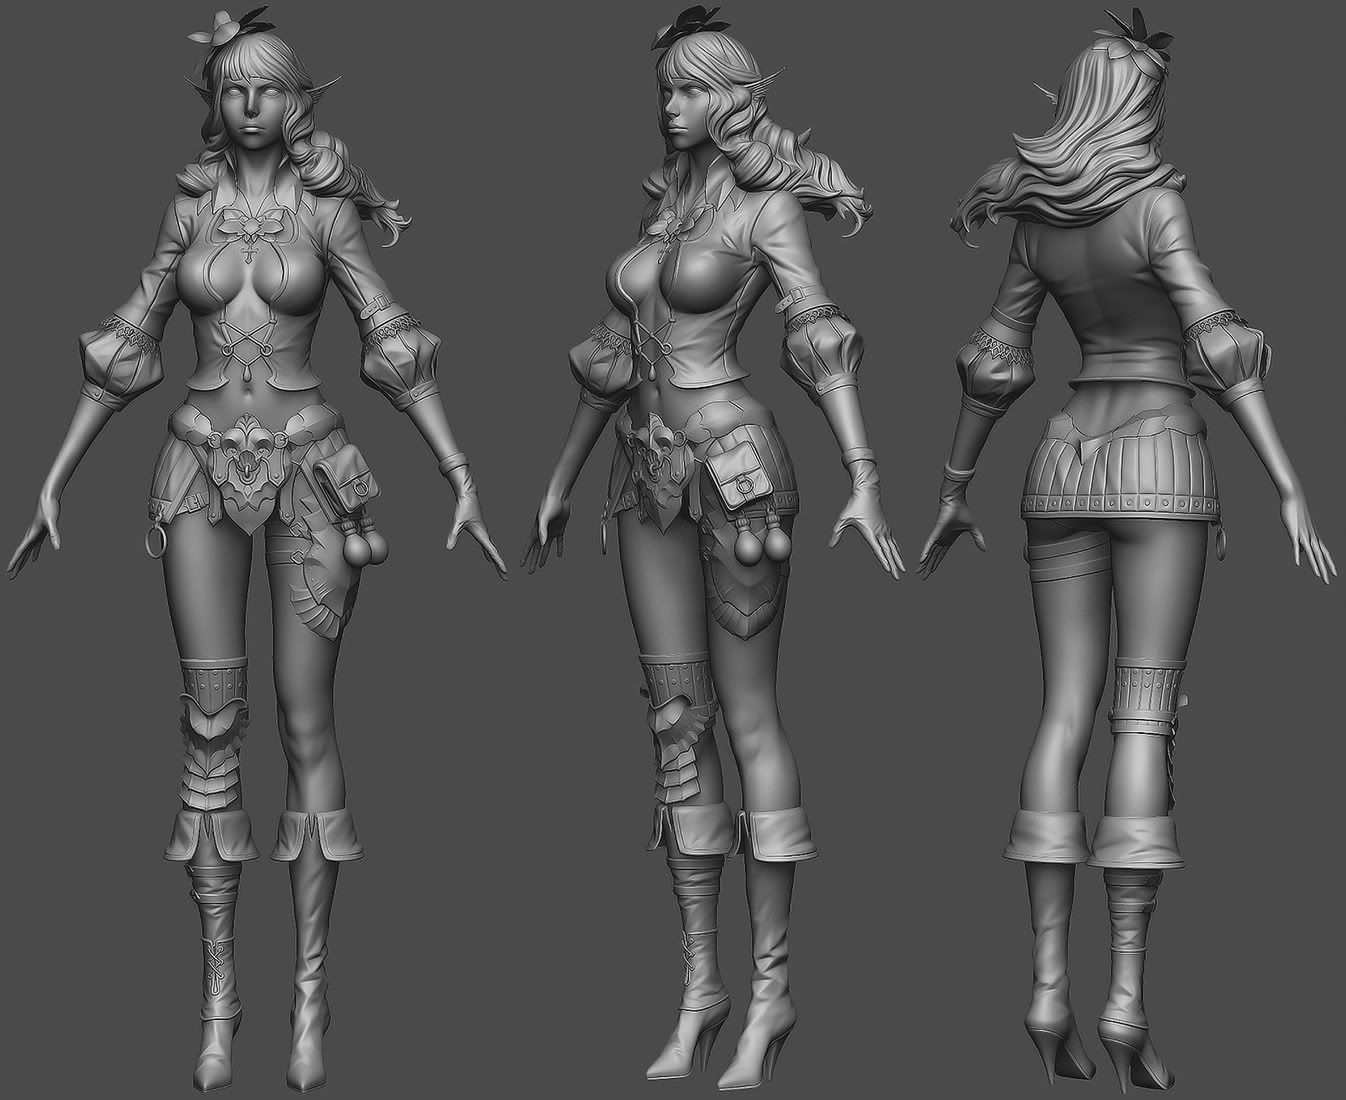 beautiful 3d character model designs for your inspiration